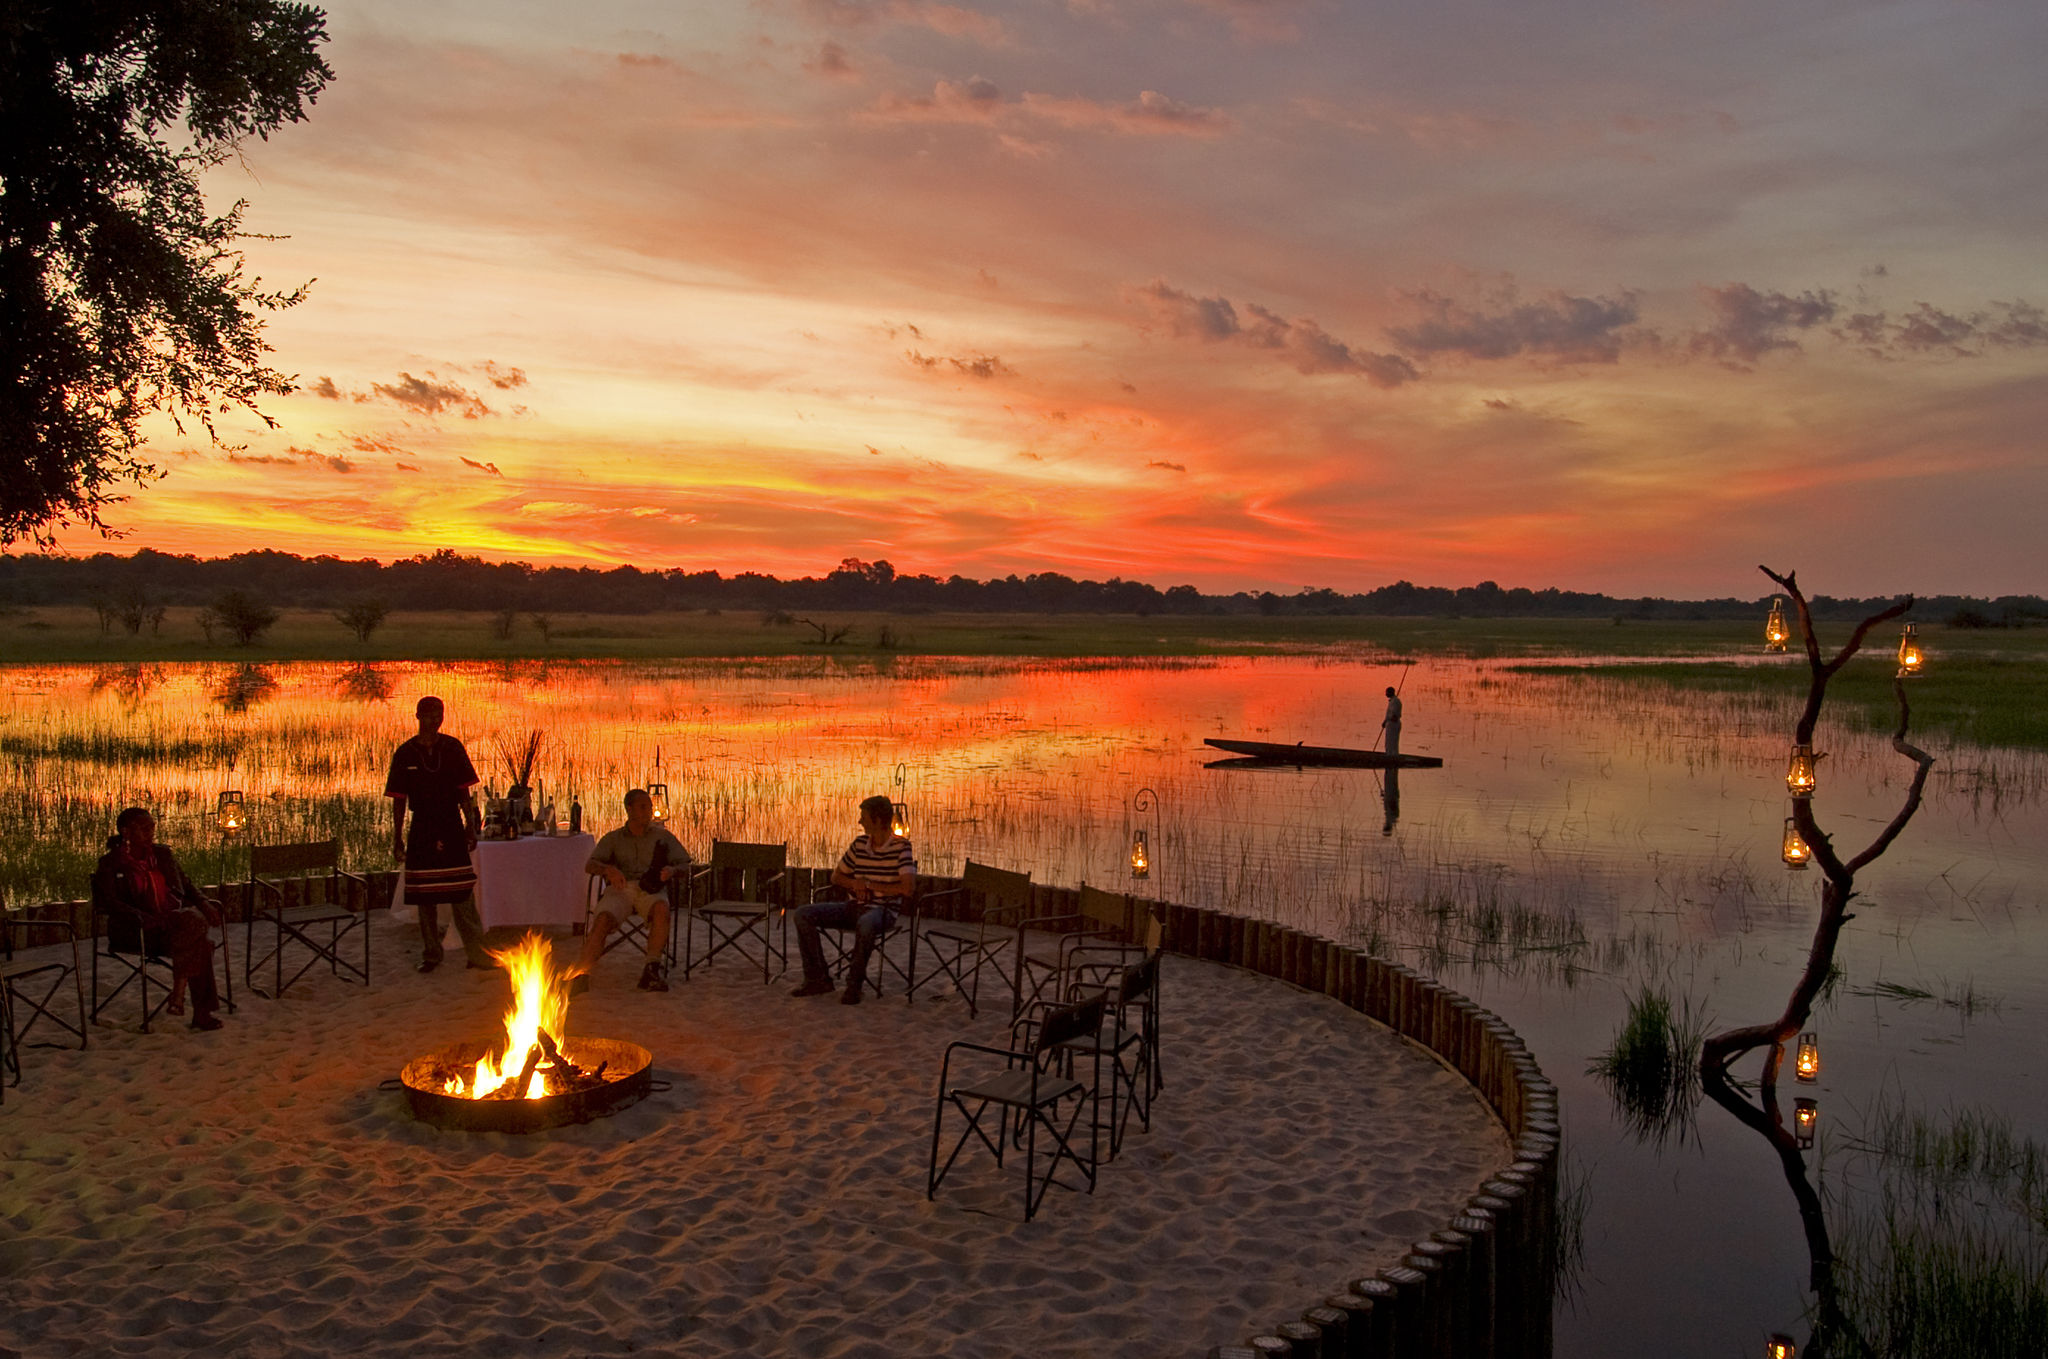 a waterside fire and sunset view